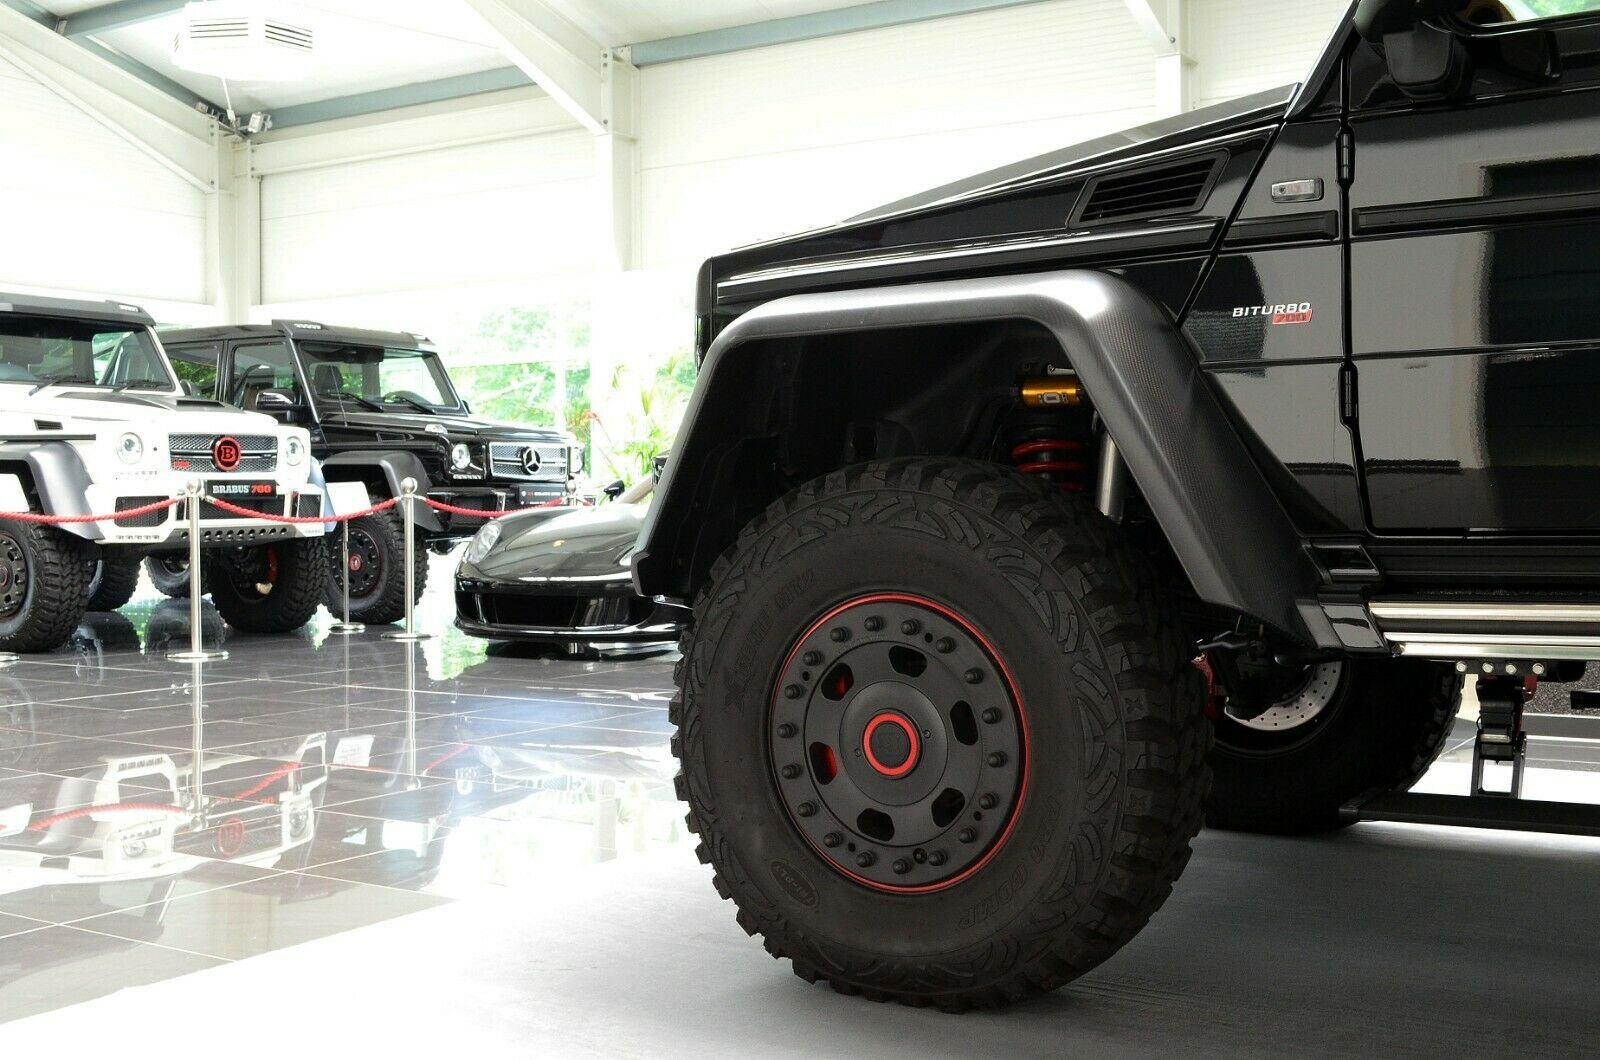 Mercedes-Benz G 63 AMG 6x6 Brabus700 - 1of15 (7)